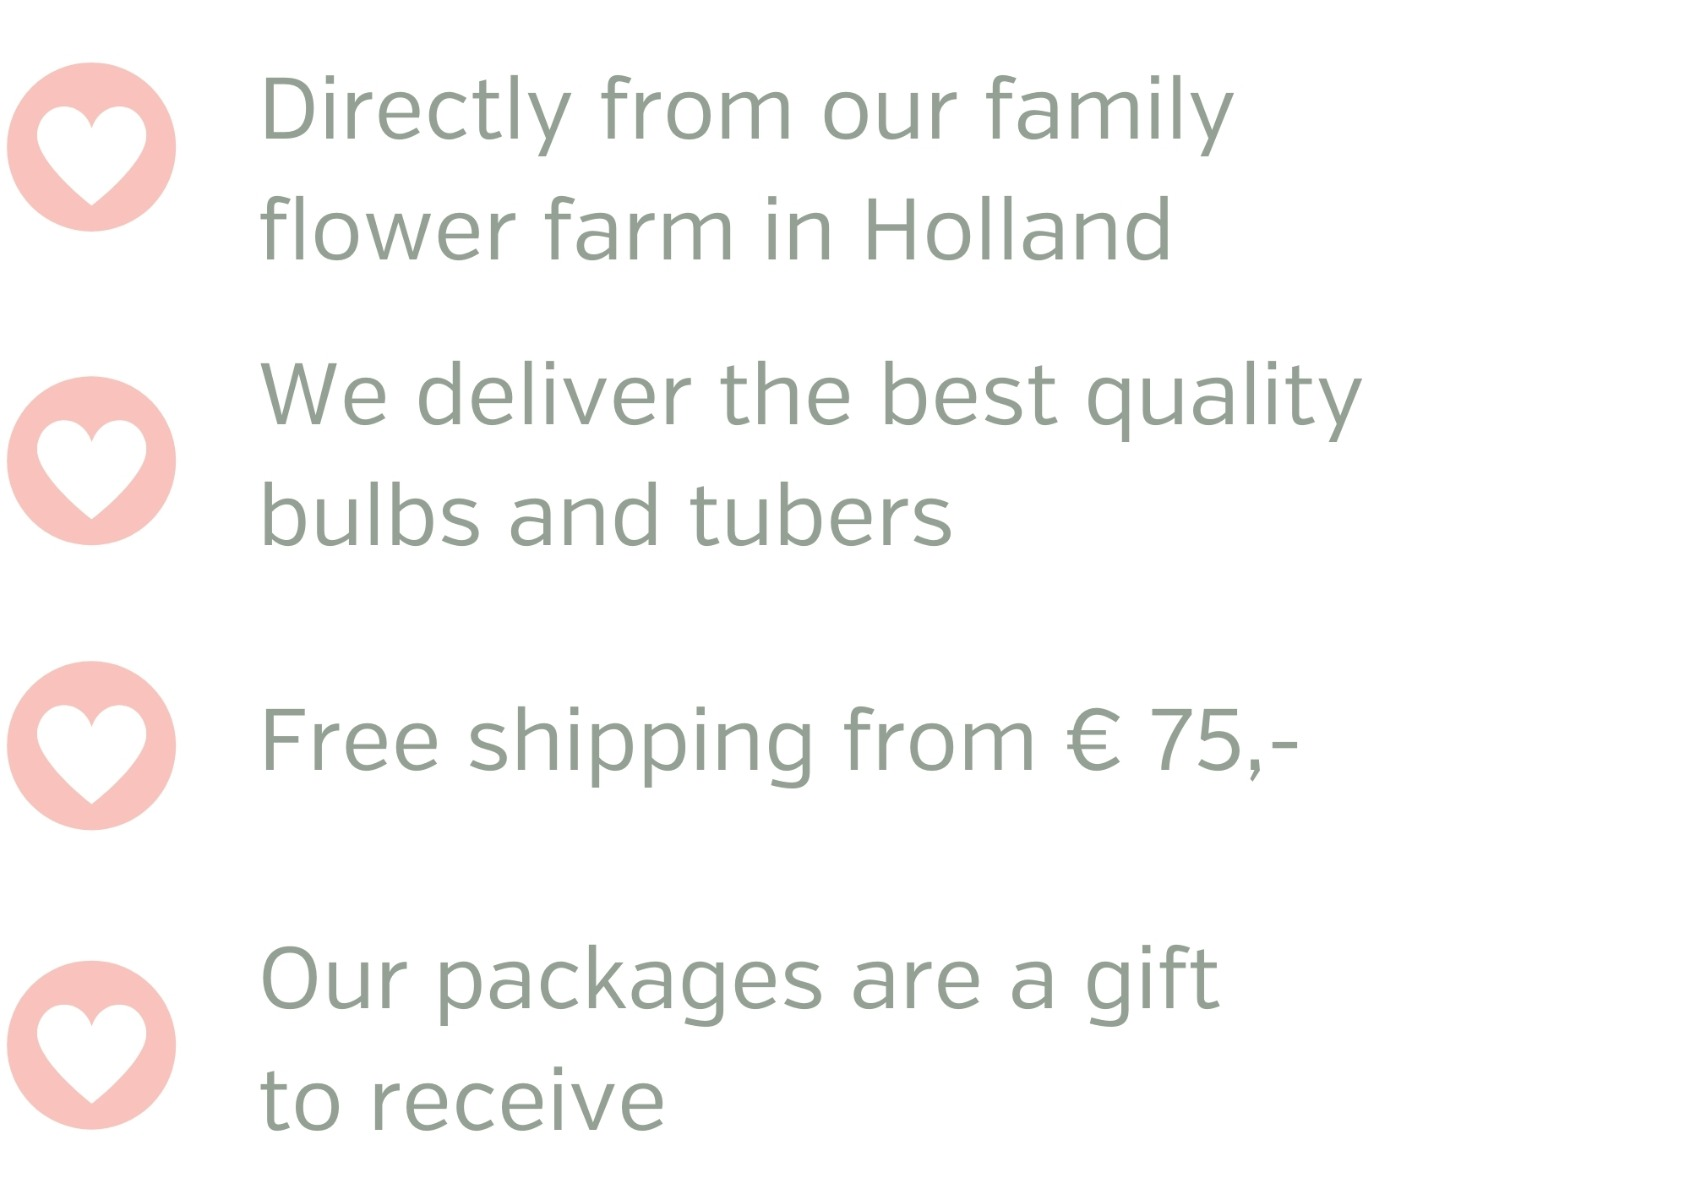 the best quality bulbs and tubers